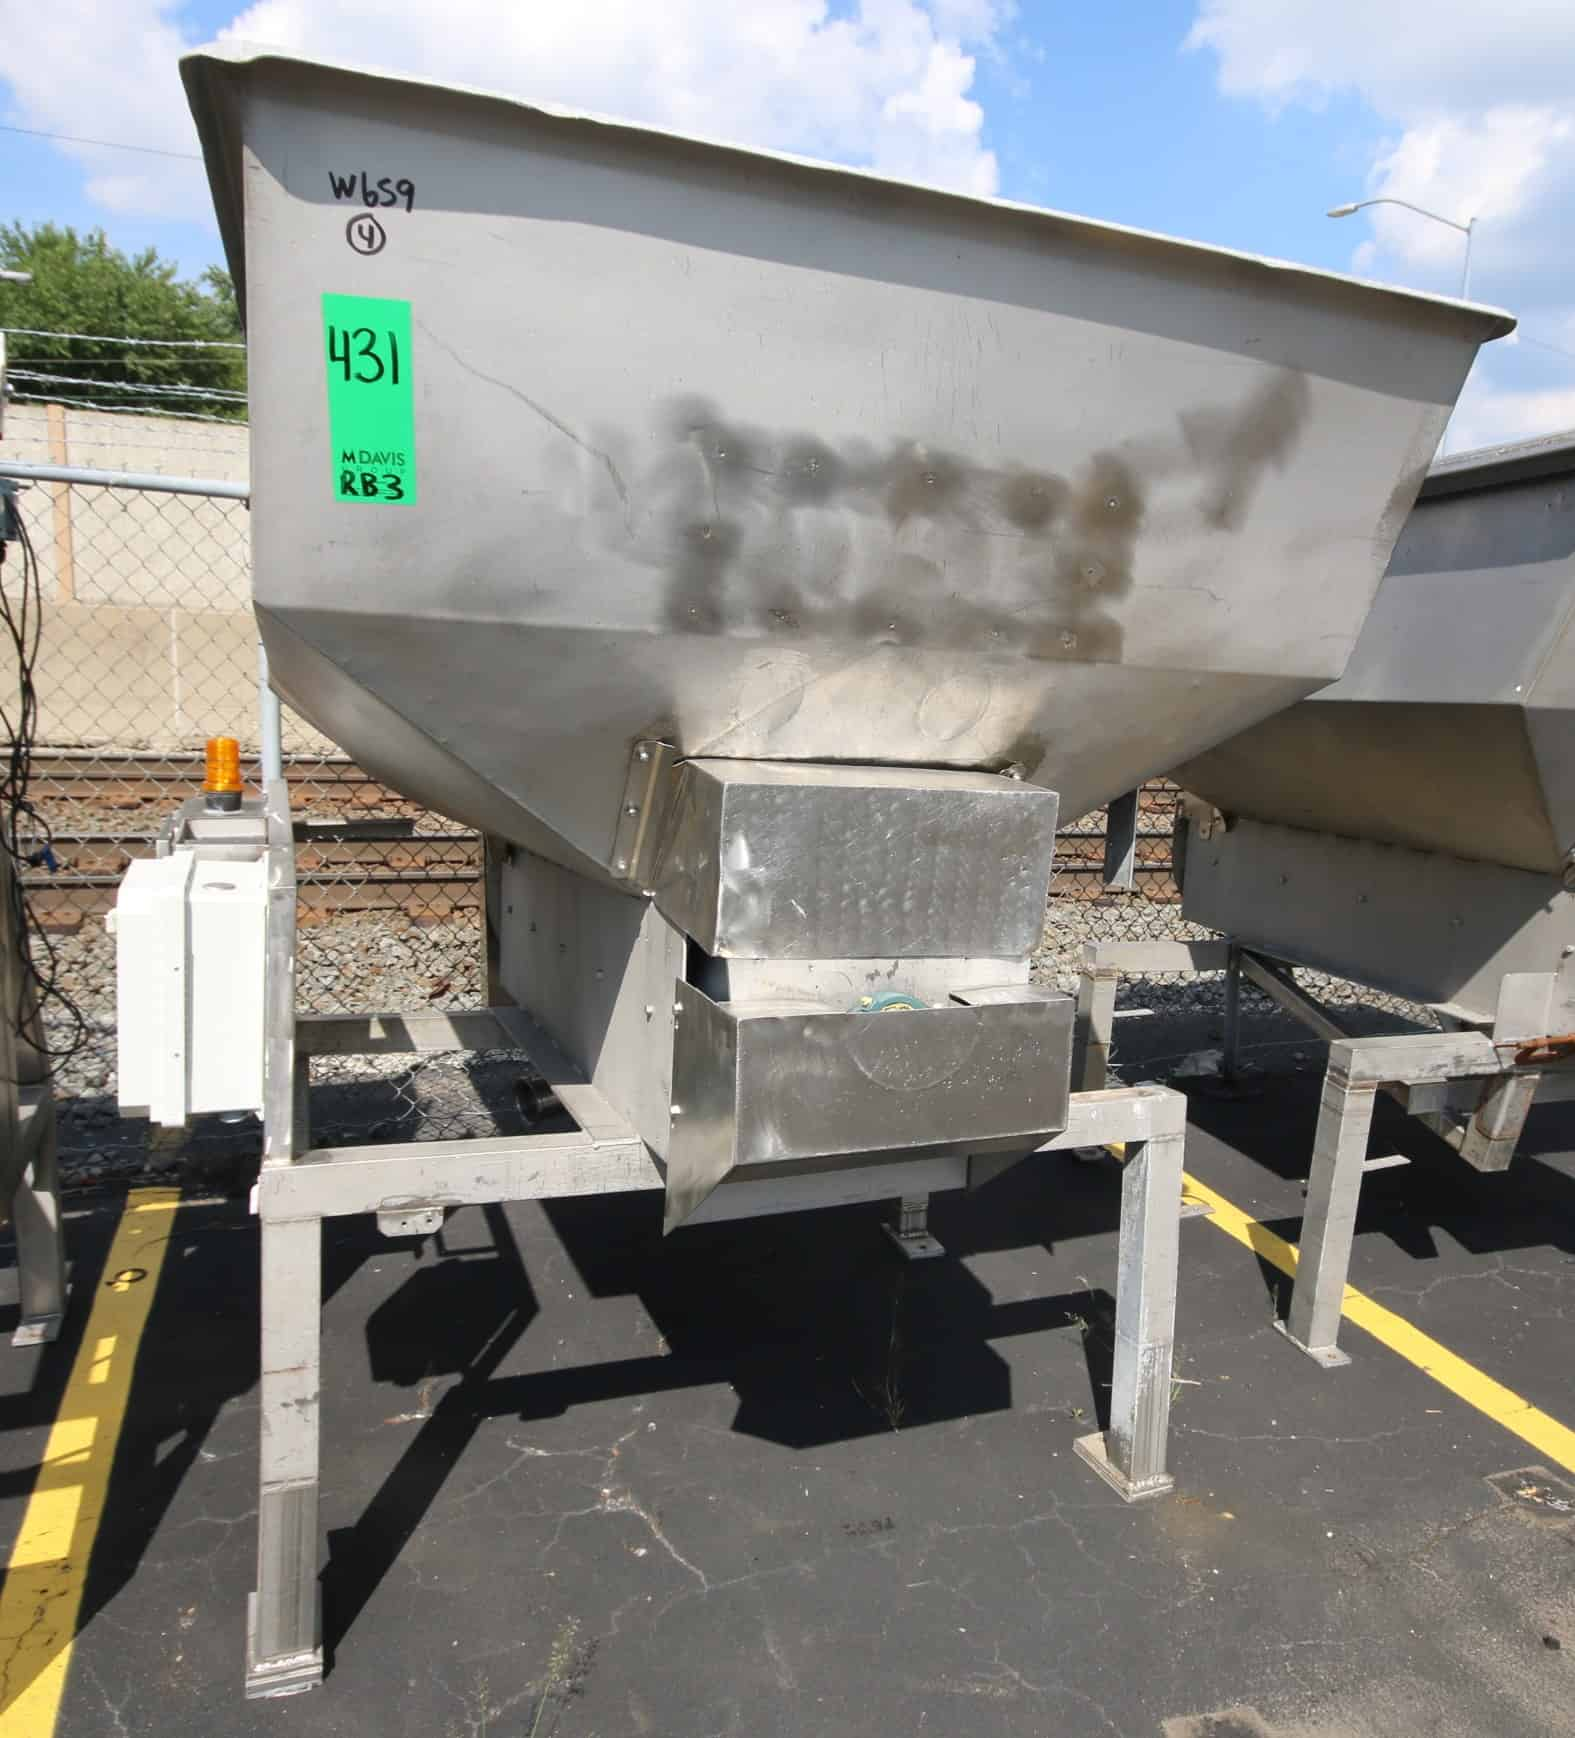 "(2) 92"" L x 60"" W x 46"" D S/S Auger Feed Hopper with 14"" S/S Bottom Powered Auger with SEW Drive Motor, Bottom Dowcharge Chute, S/S Frame & Control Box, (Overall Diam. 6 ft W x 8 ft L x 79"" H)"